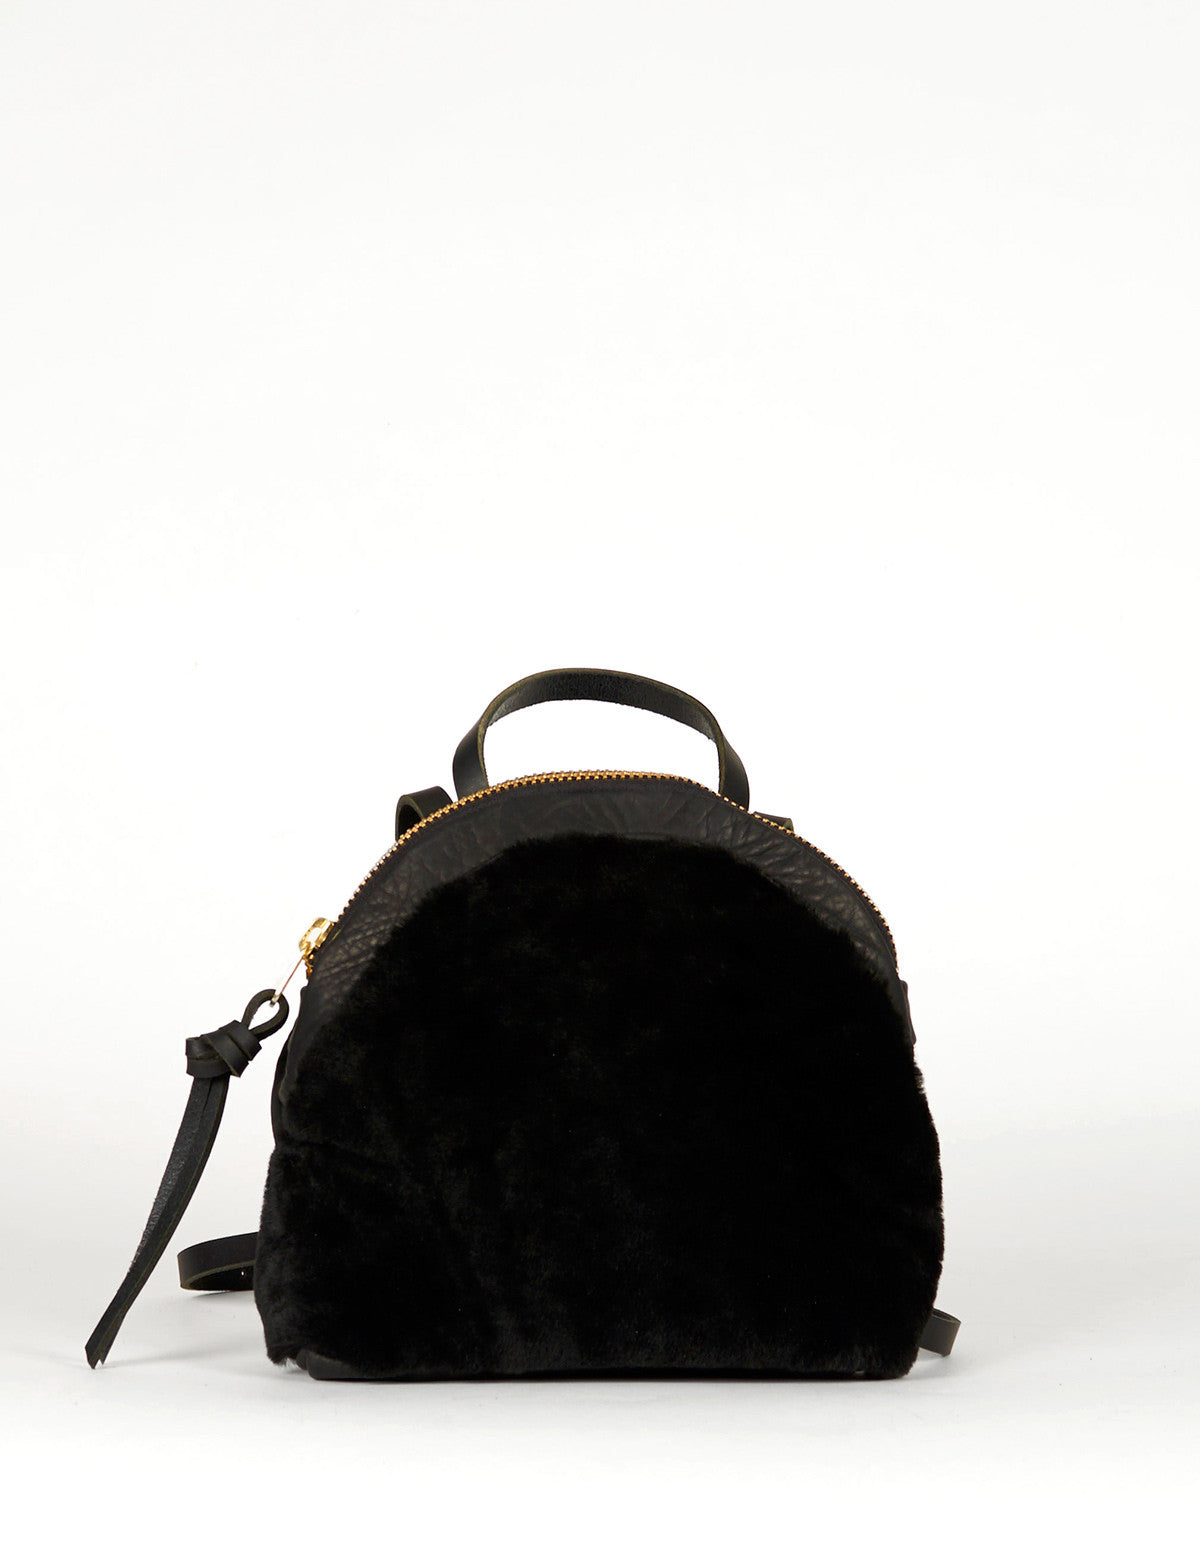 Eleven Thirty Anni Mini Backpack Black Shearling - Still Life - 1